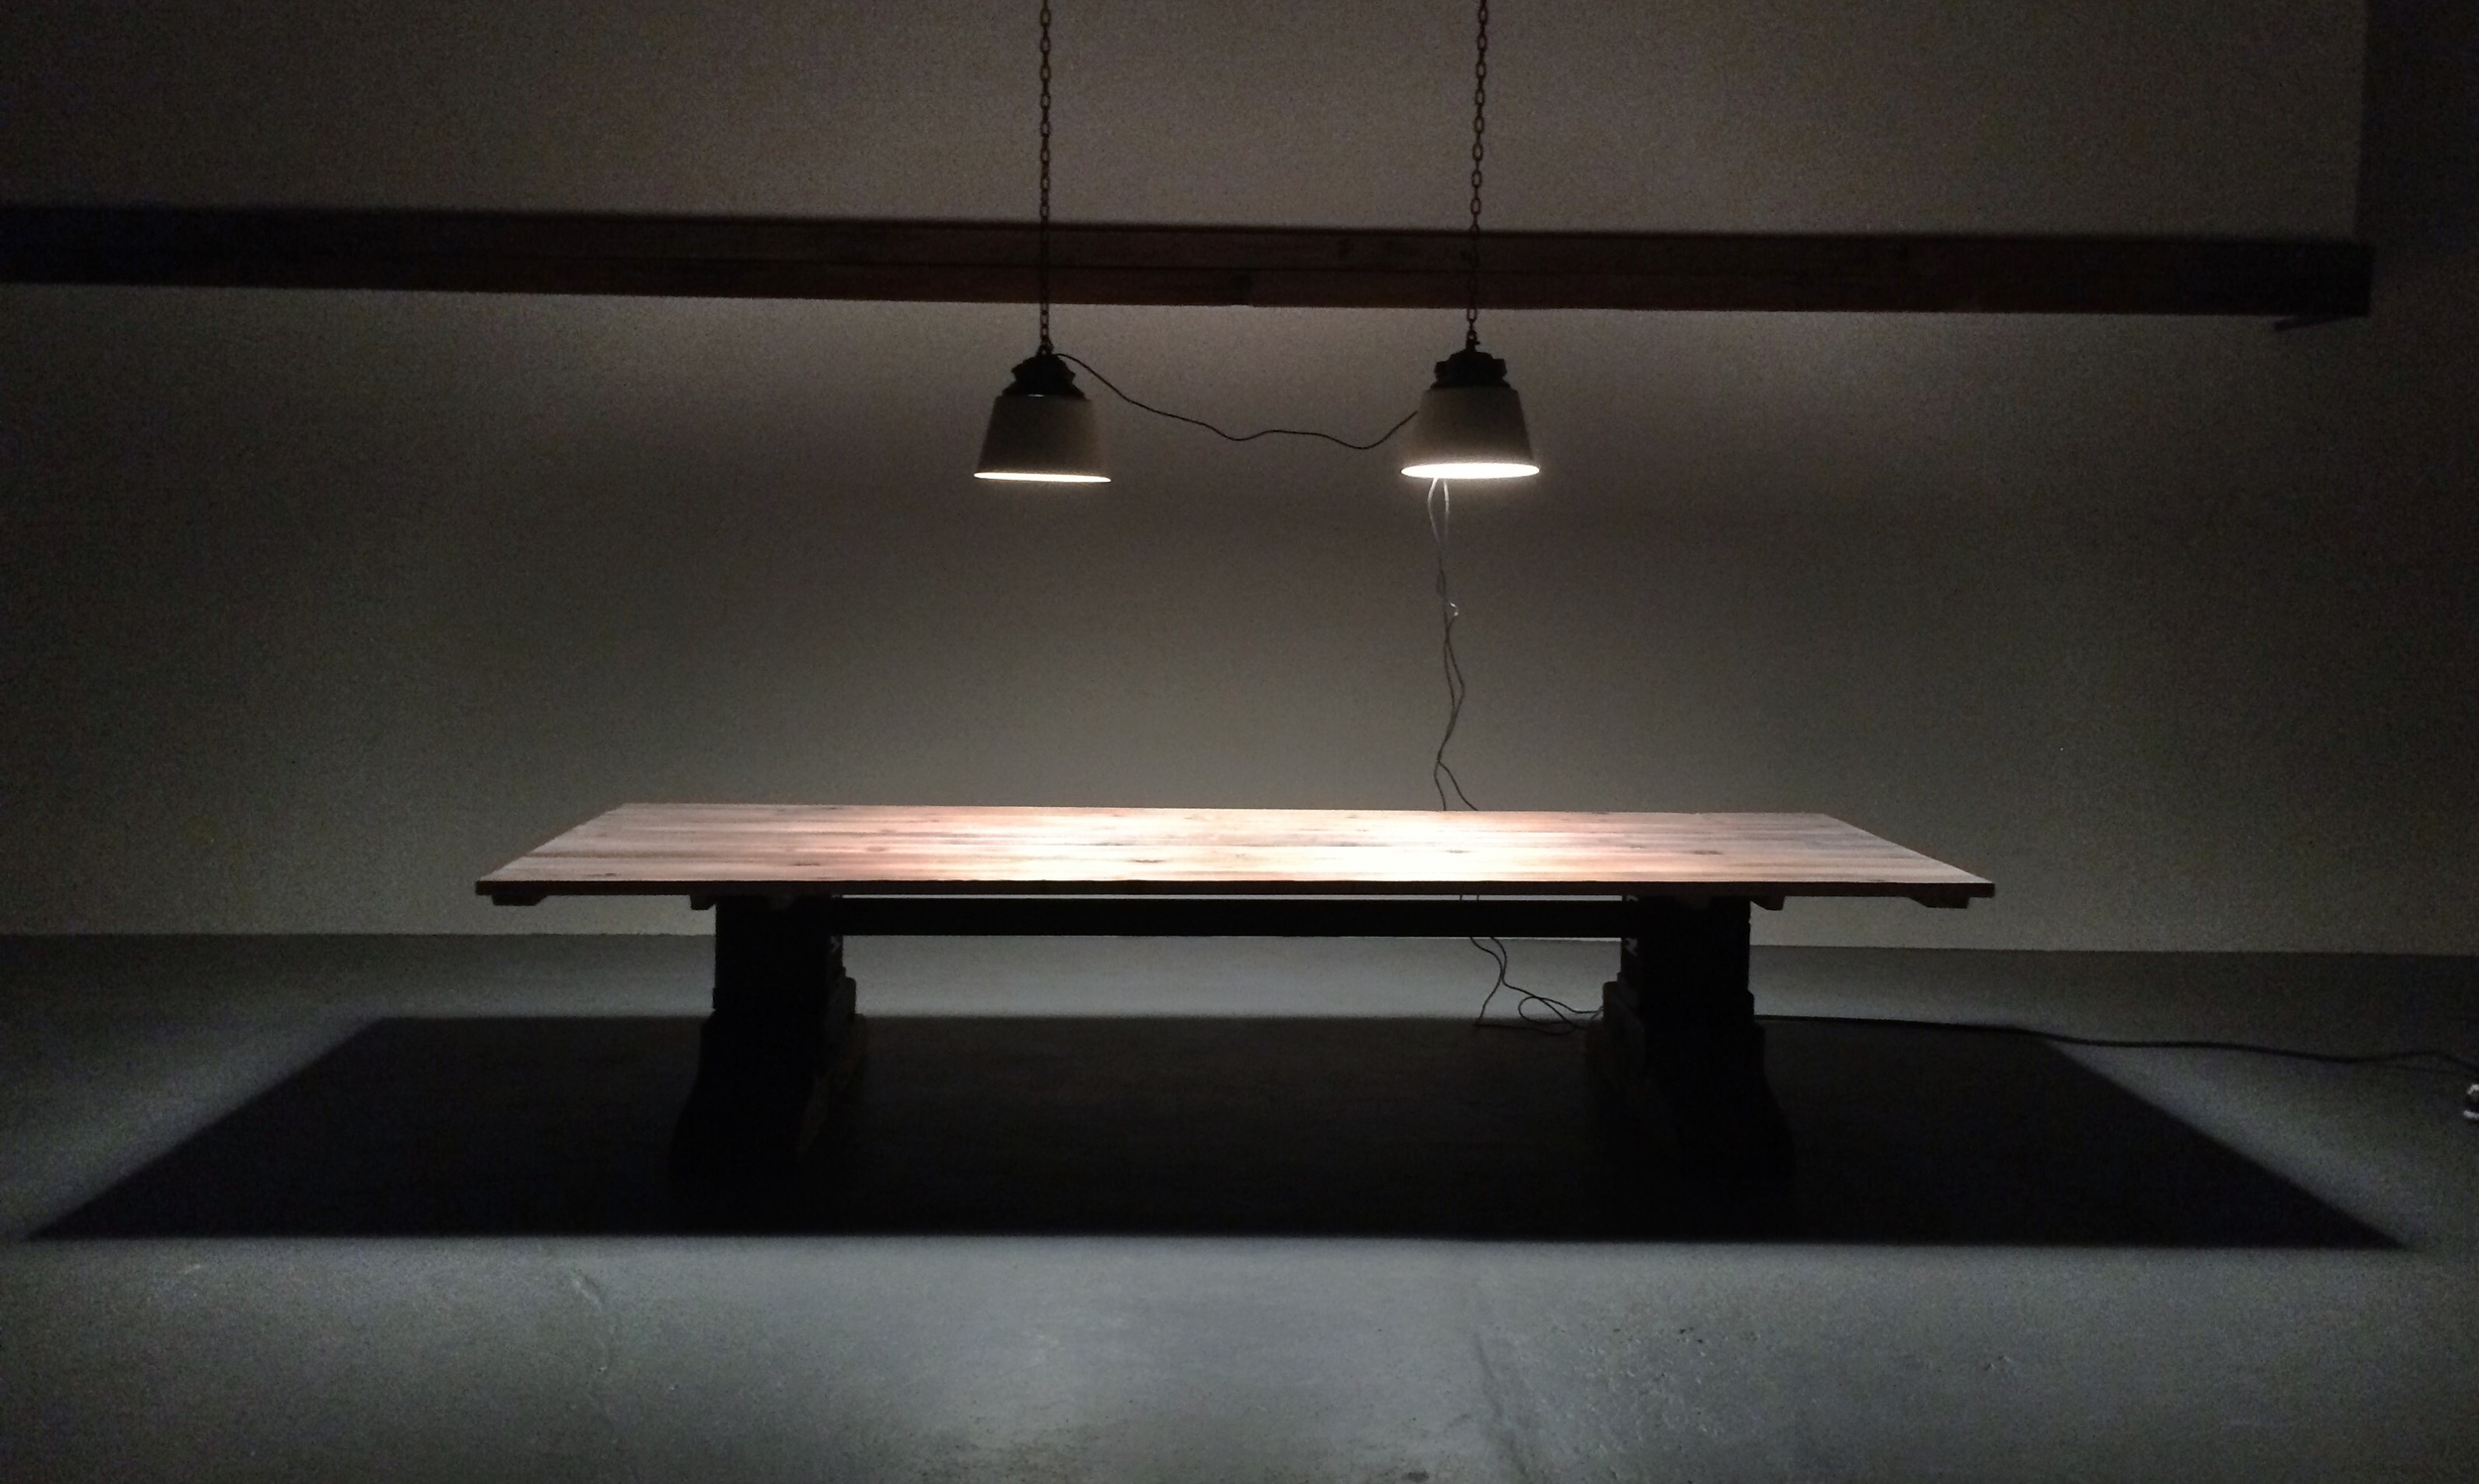 15' Lx5' W Conference Table, Materials: 300 year oldFir and Blackened Steel